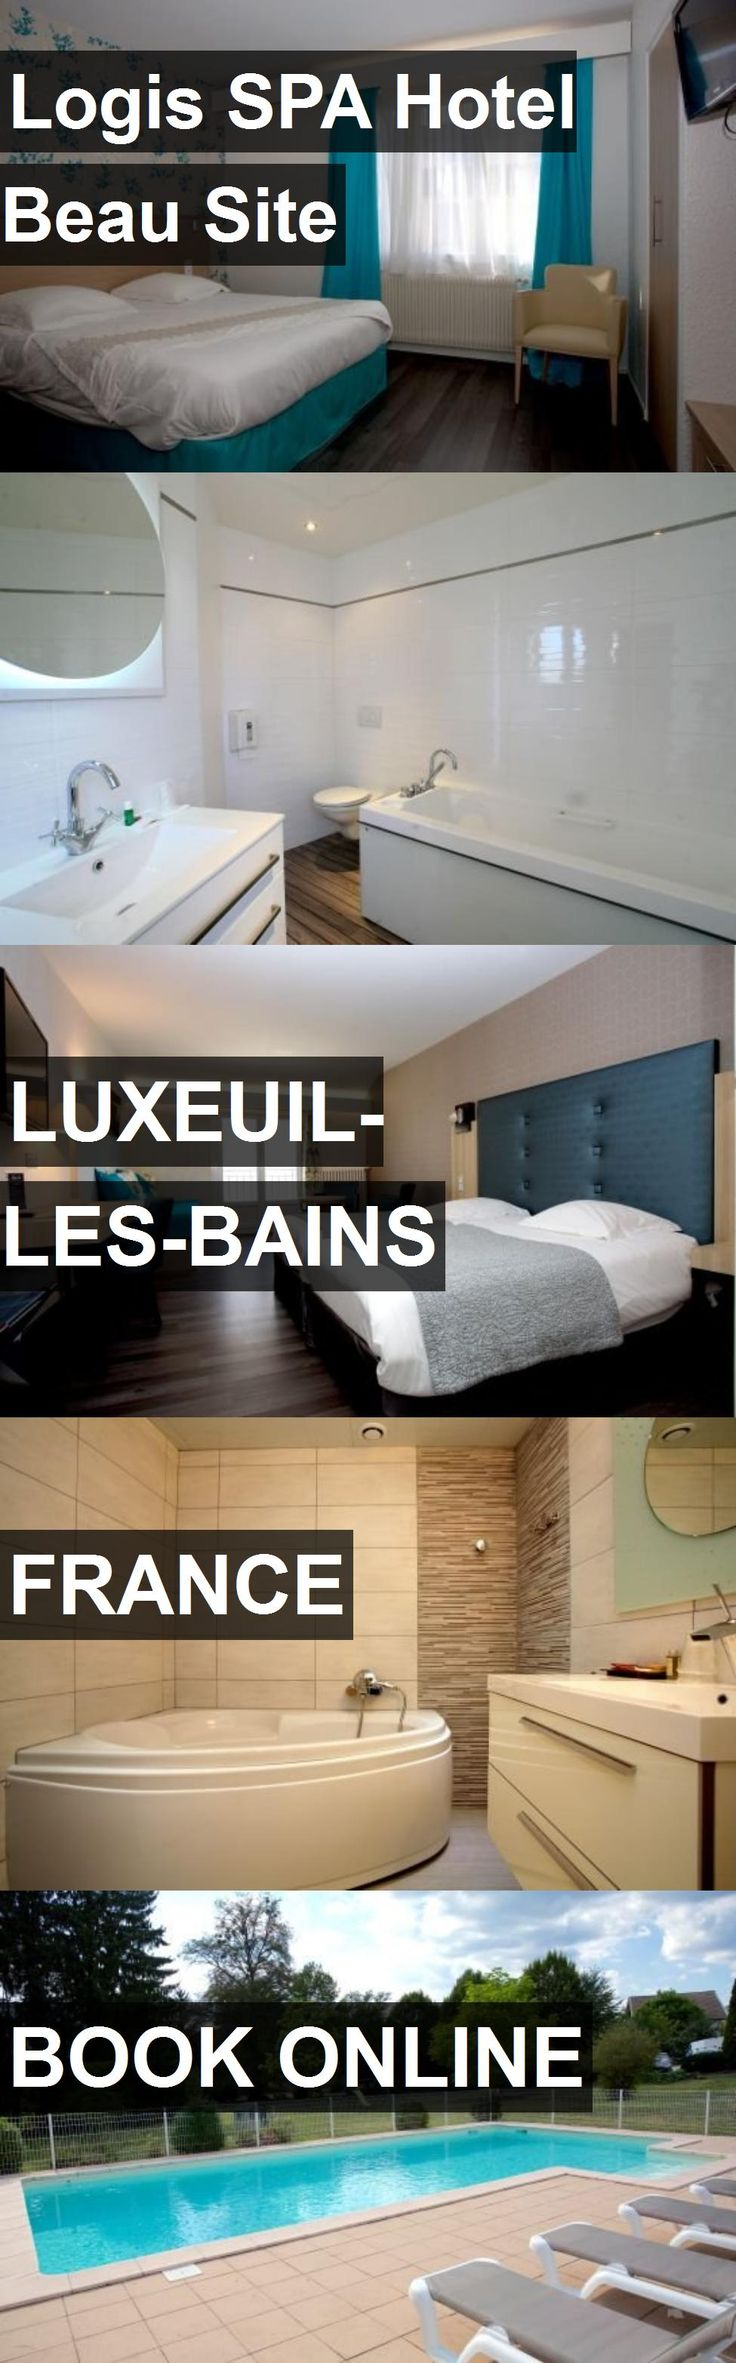 Logis SPA Hotel Beau Site in Luxeuil-les-Bains, France. For more information, photos, reviews and best prices please follow the link. #France #Luxeuil-les-Bains #travel #vacation #hotel